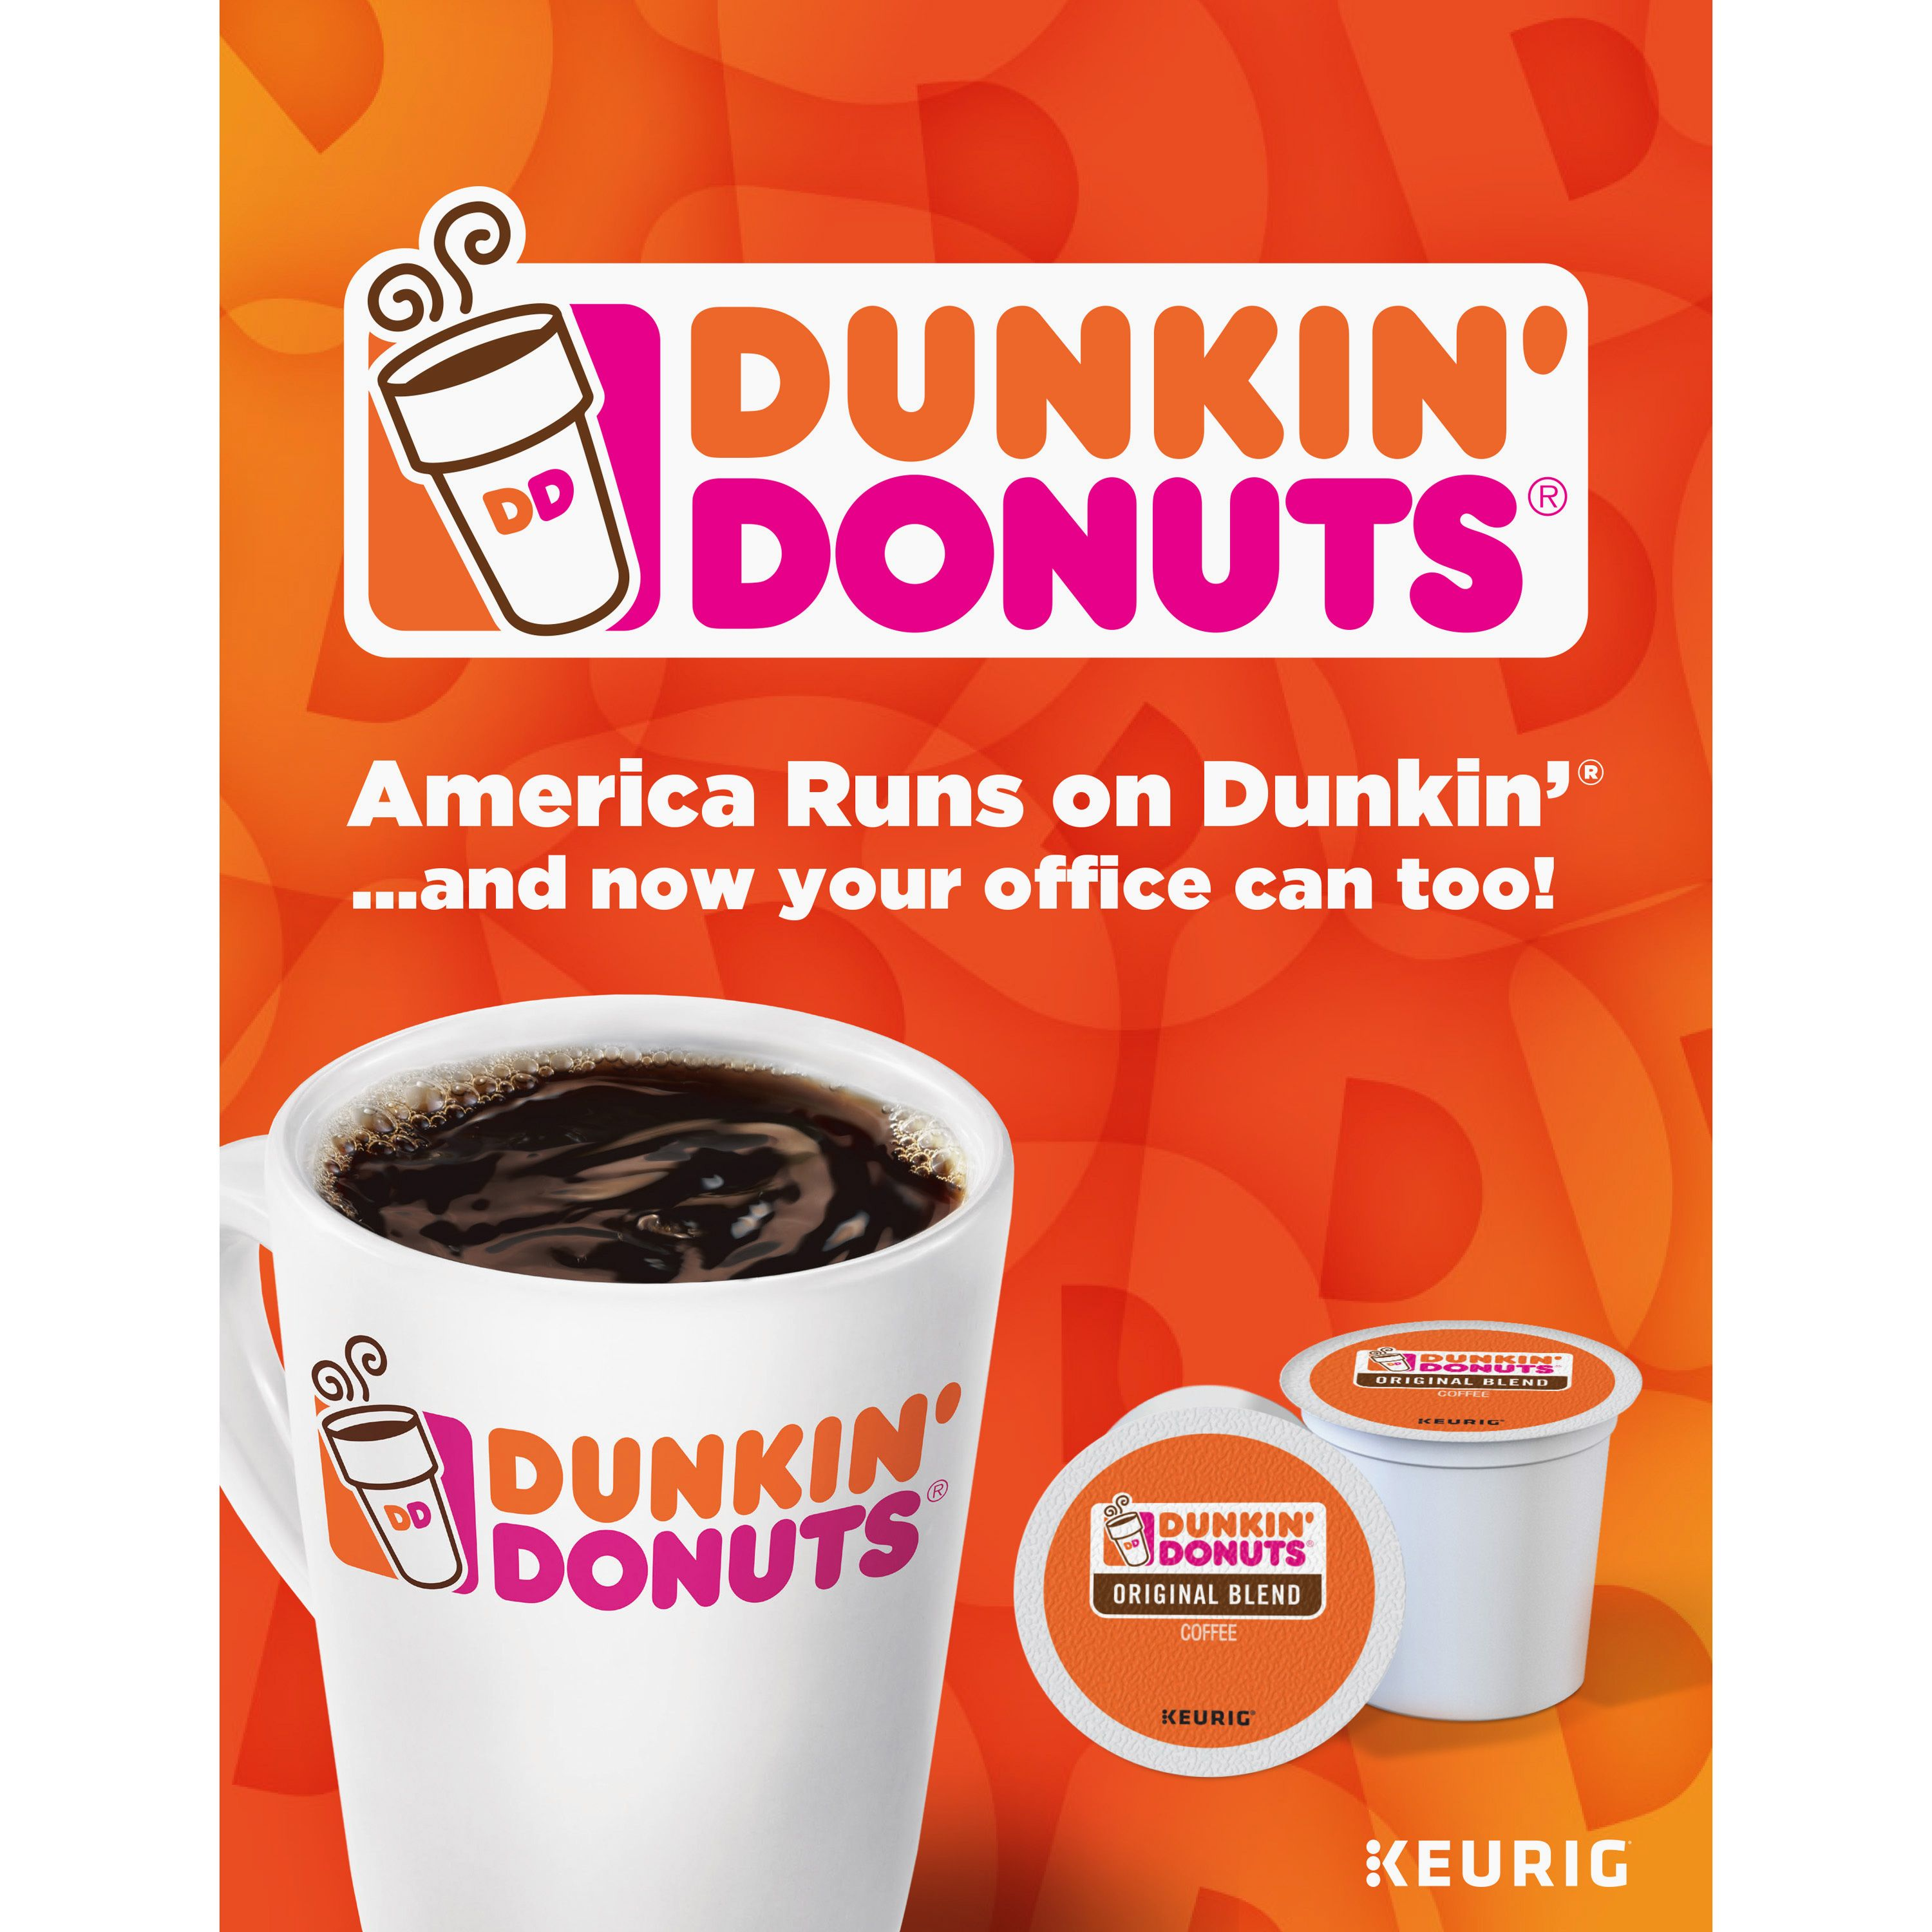 Enjoy an authentic Dunkin' donuts experience in no time at